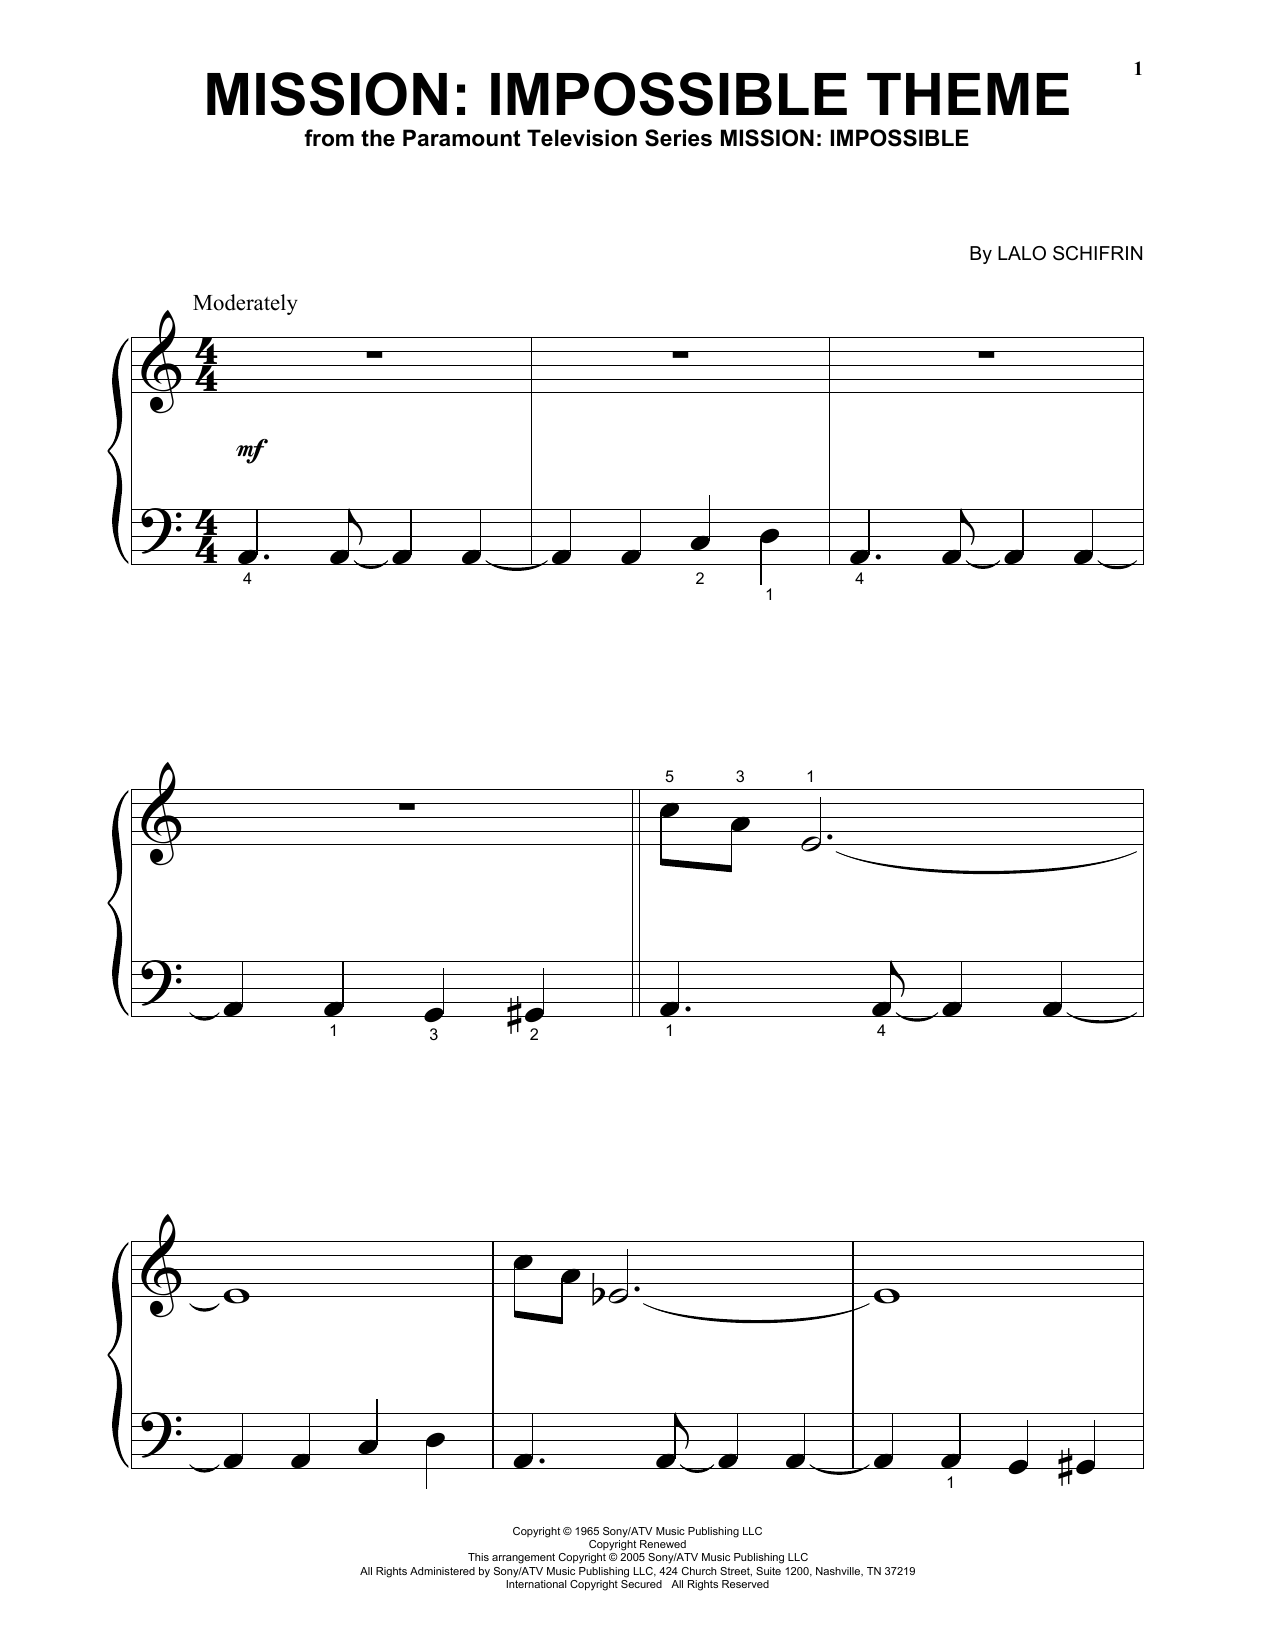 Mission: Impossible Theme | Sheet Music Direct